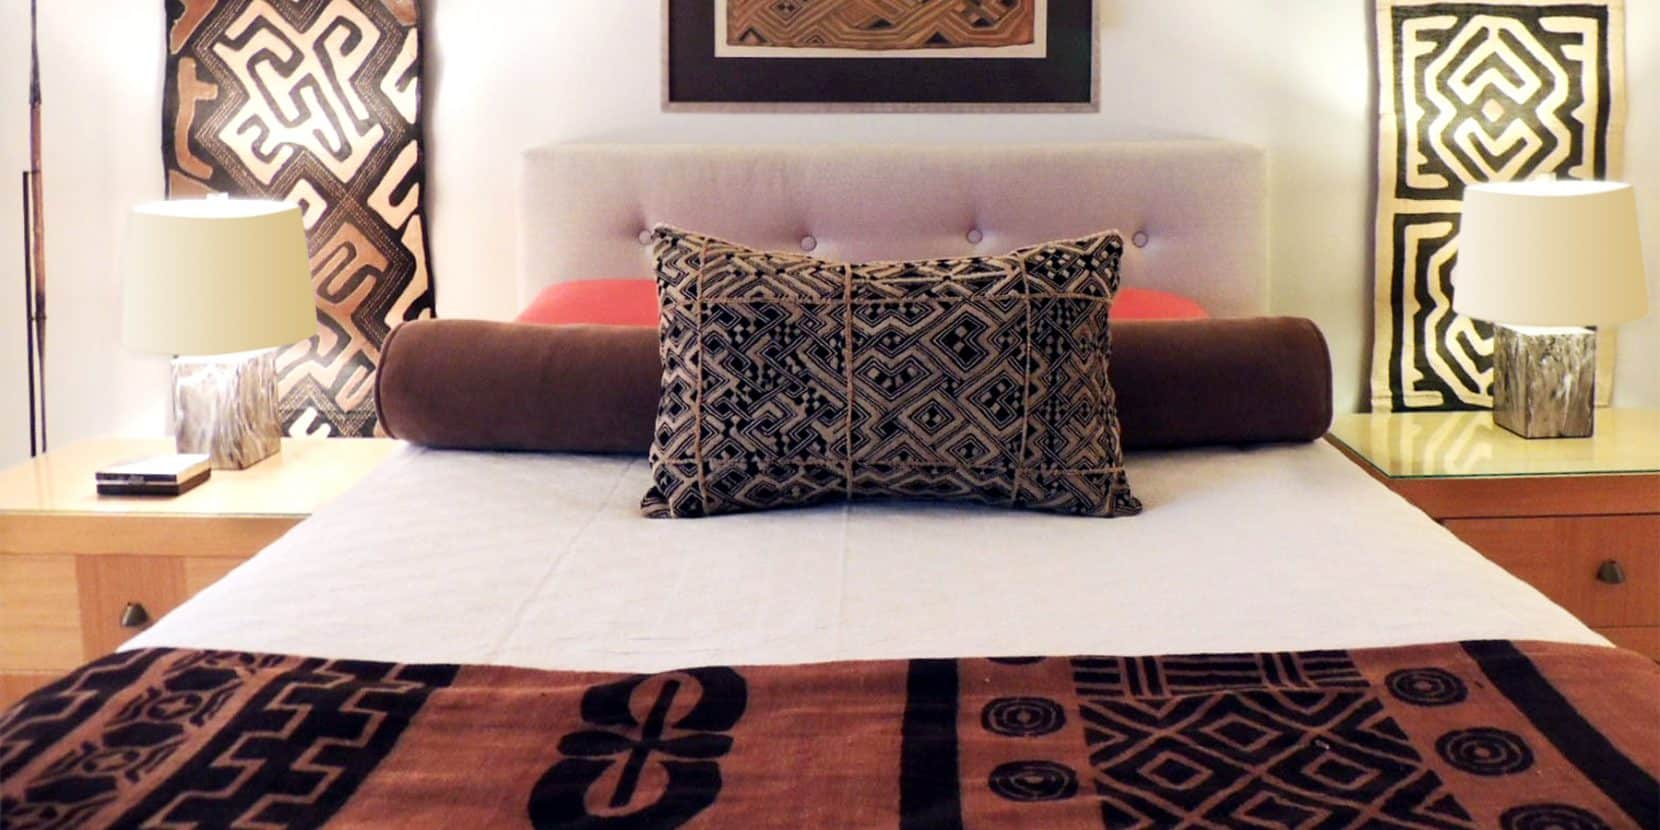 African fabrics in the main bedroom of the apartment Oskar Torres-Lam of Antique Textiles Galleries shares with his husband, writer Jimmy Lam